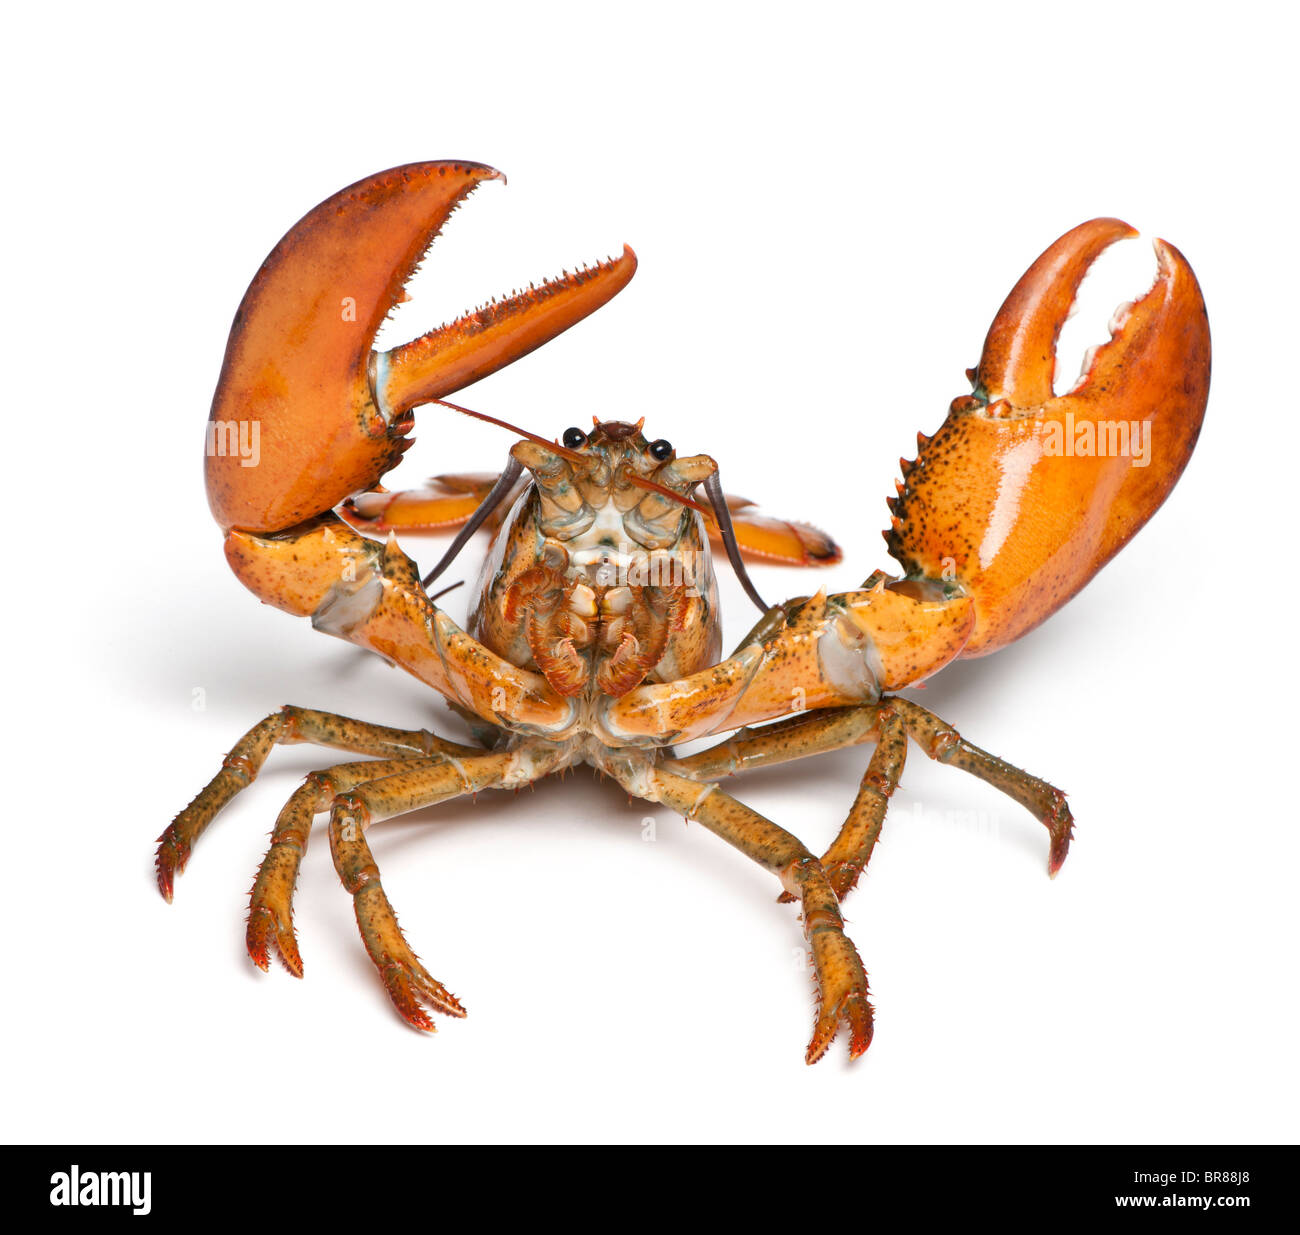 American lobster, Homarus americanus, in front of white background - Stock Image